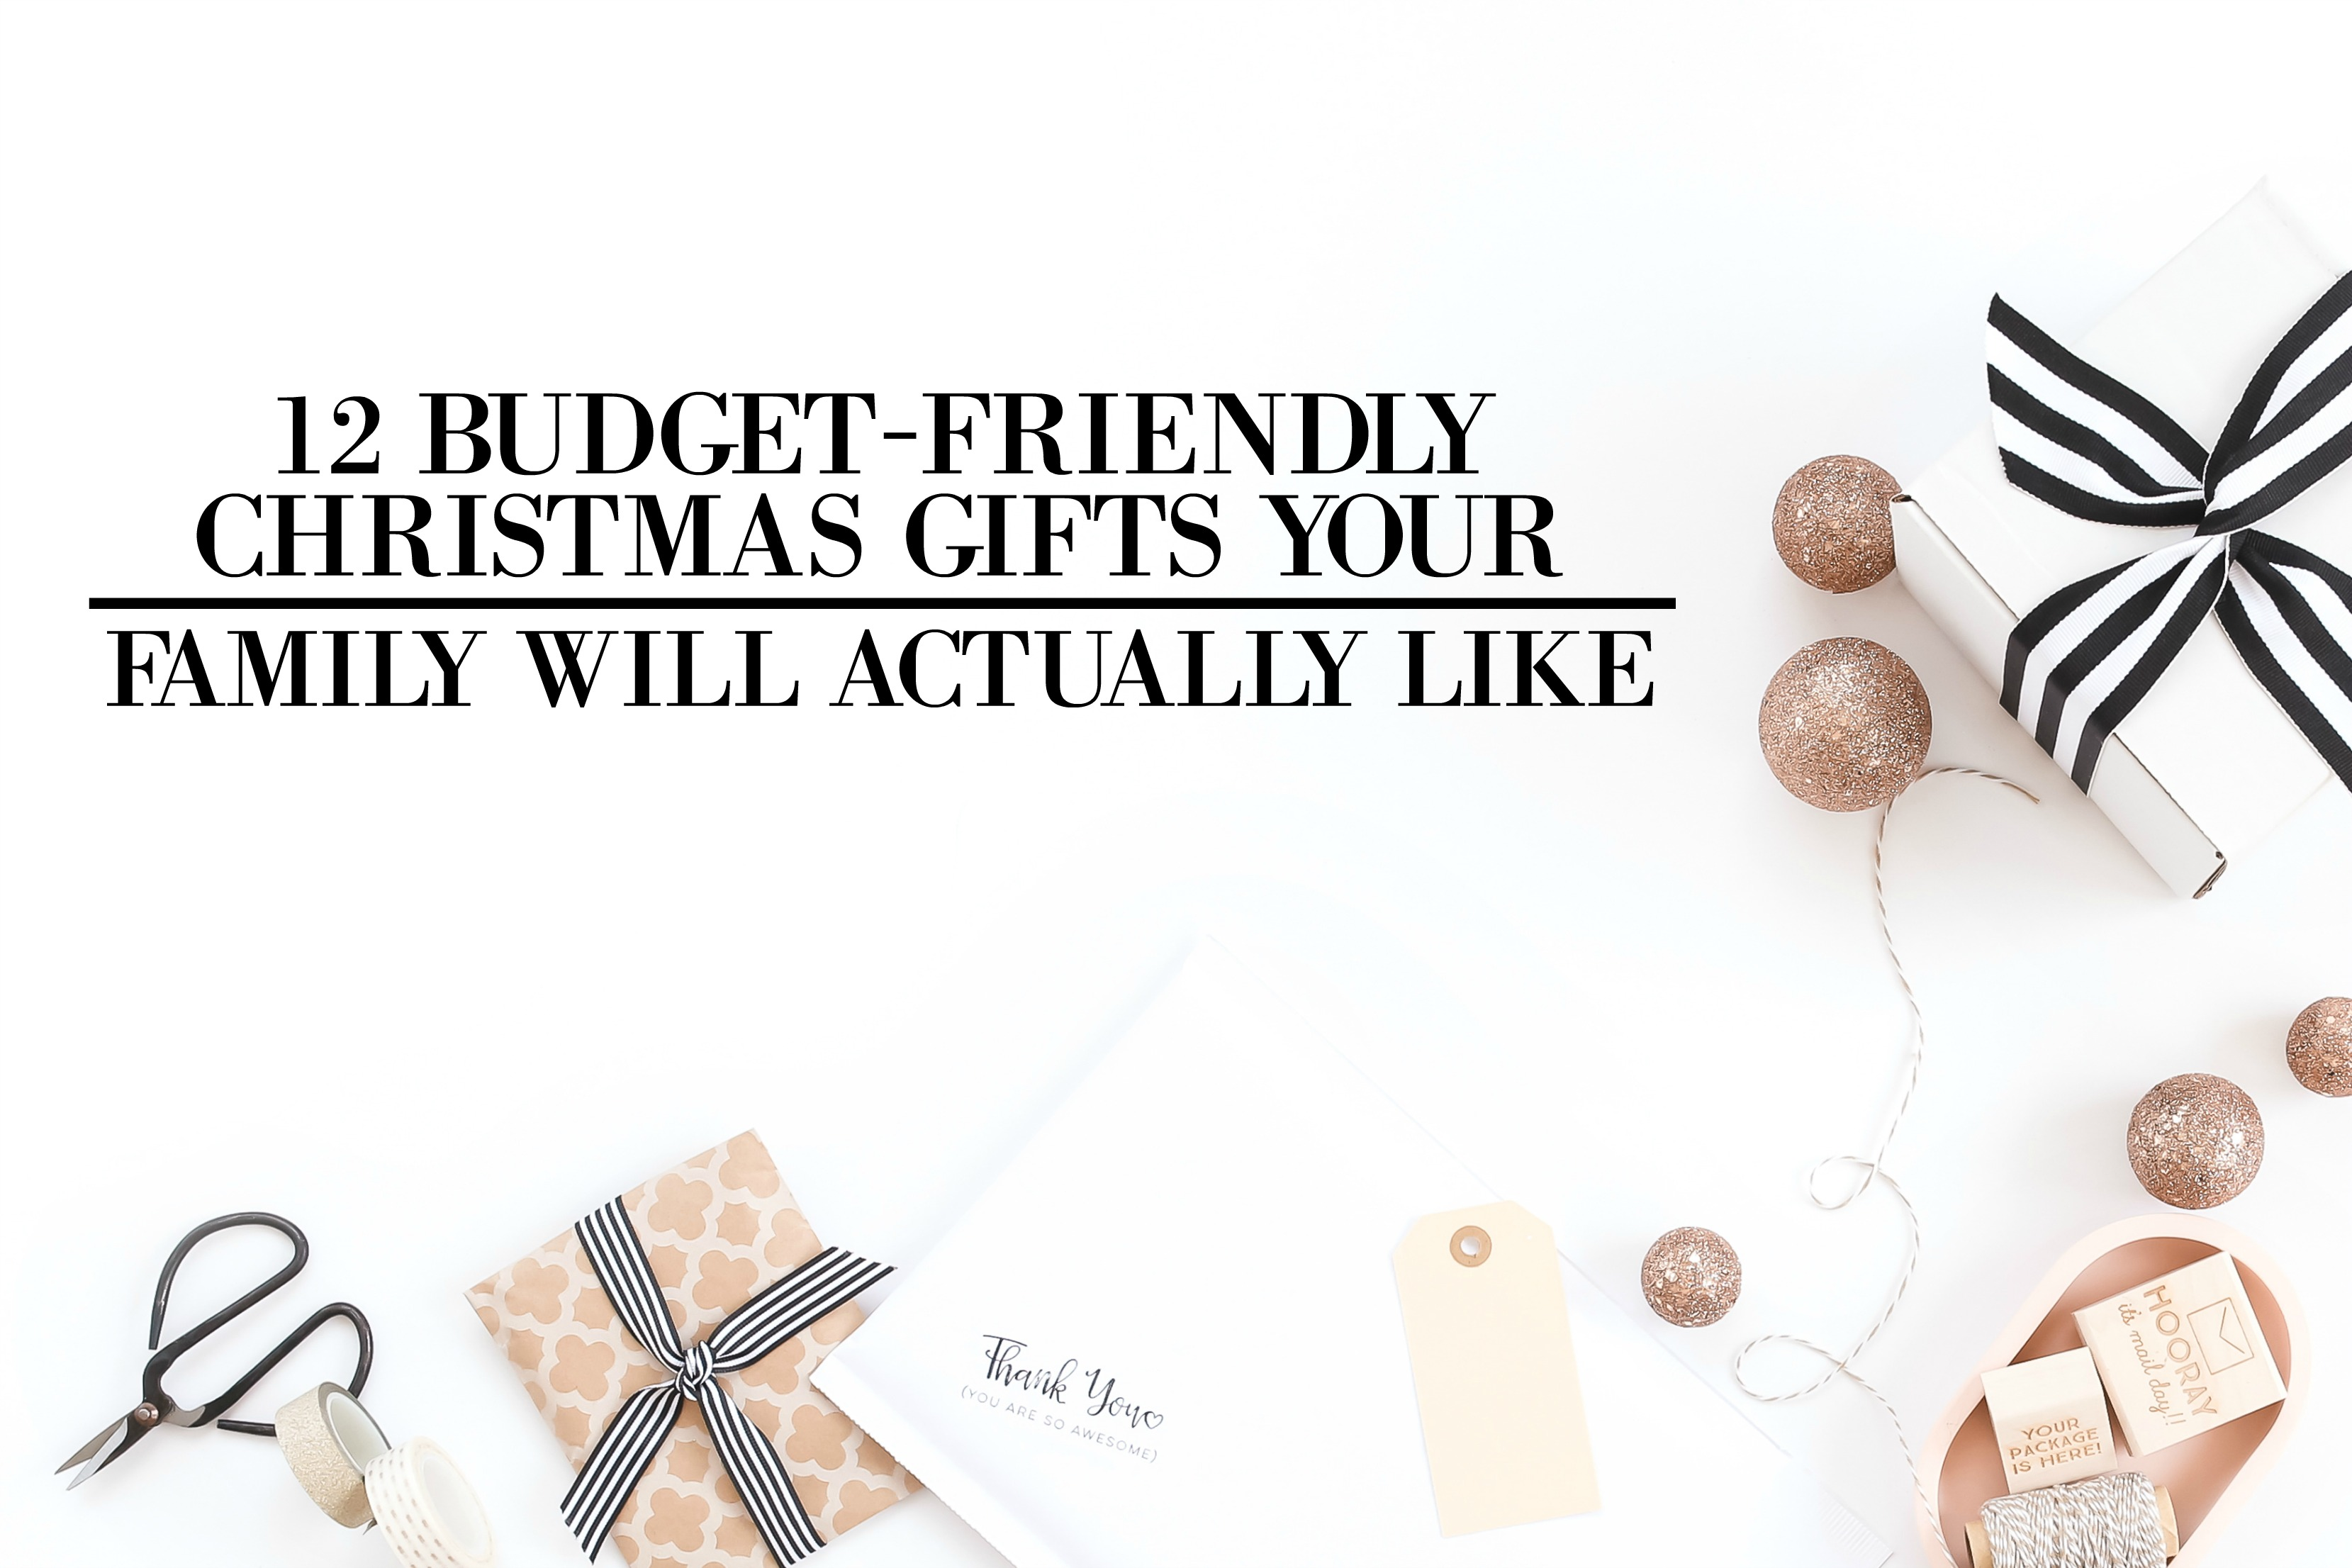 12 budget friendly christmas gifts that your family will actually like